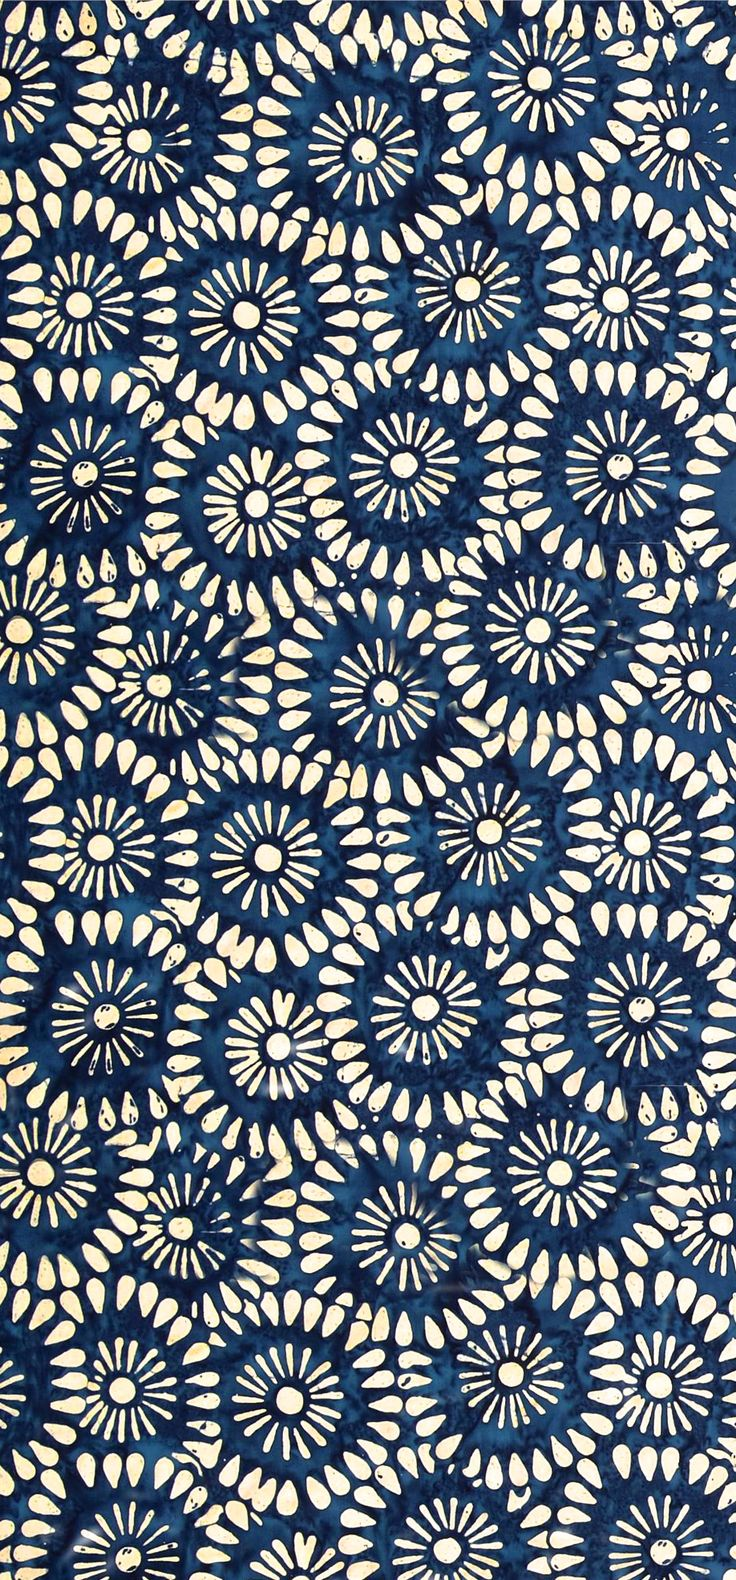 """Tonga Batik Kiss"".  Indonesian batiks from Timeless TreasuresBlue Flowers, Batik Pattern, Block Prints, Repeat Pattern, Art, Design, Flower Patterns, Textile, Floral Pattern"